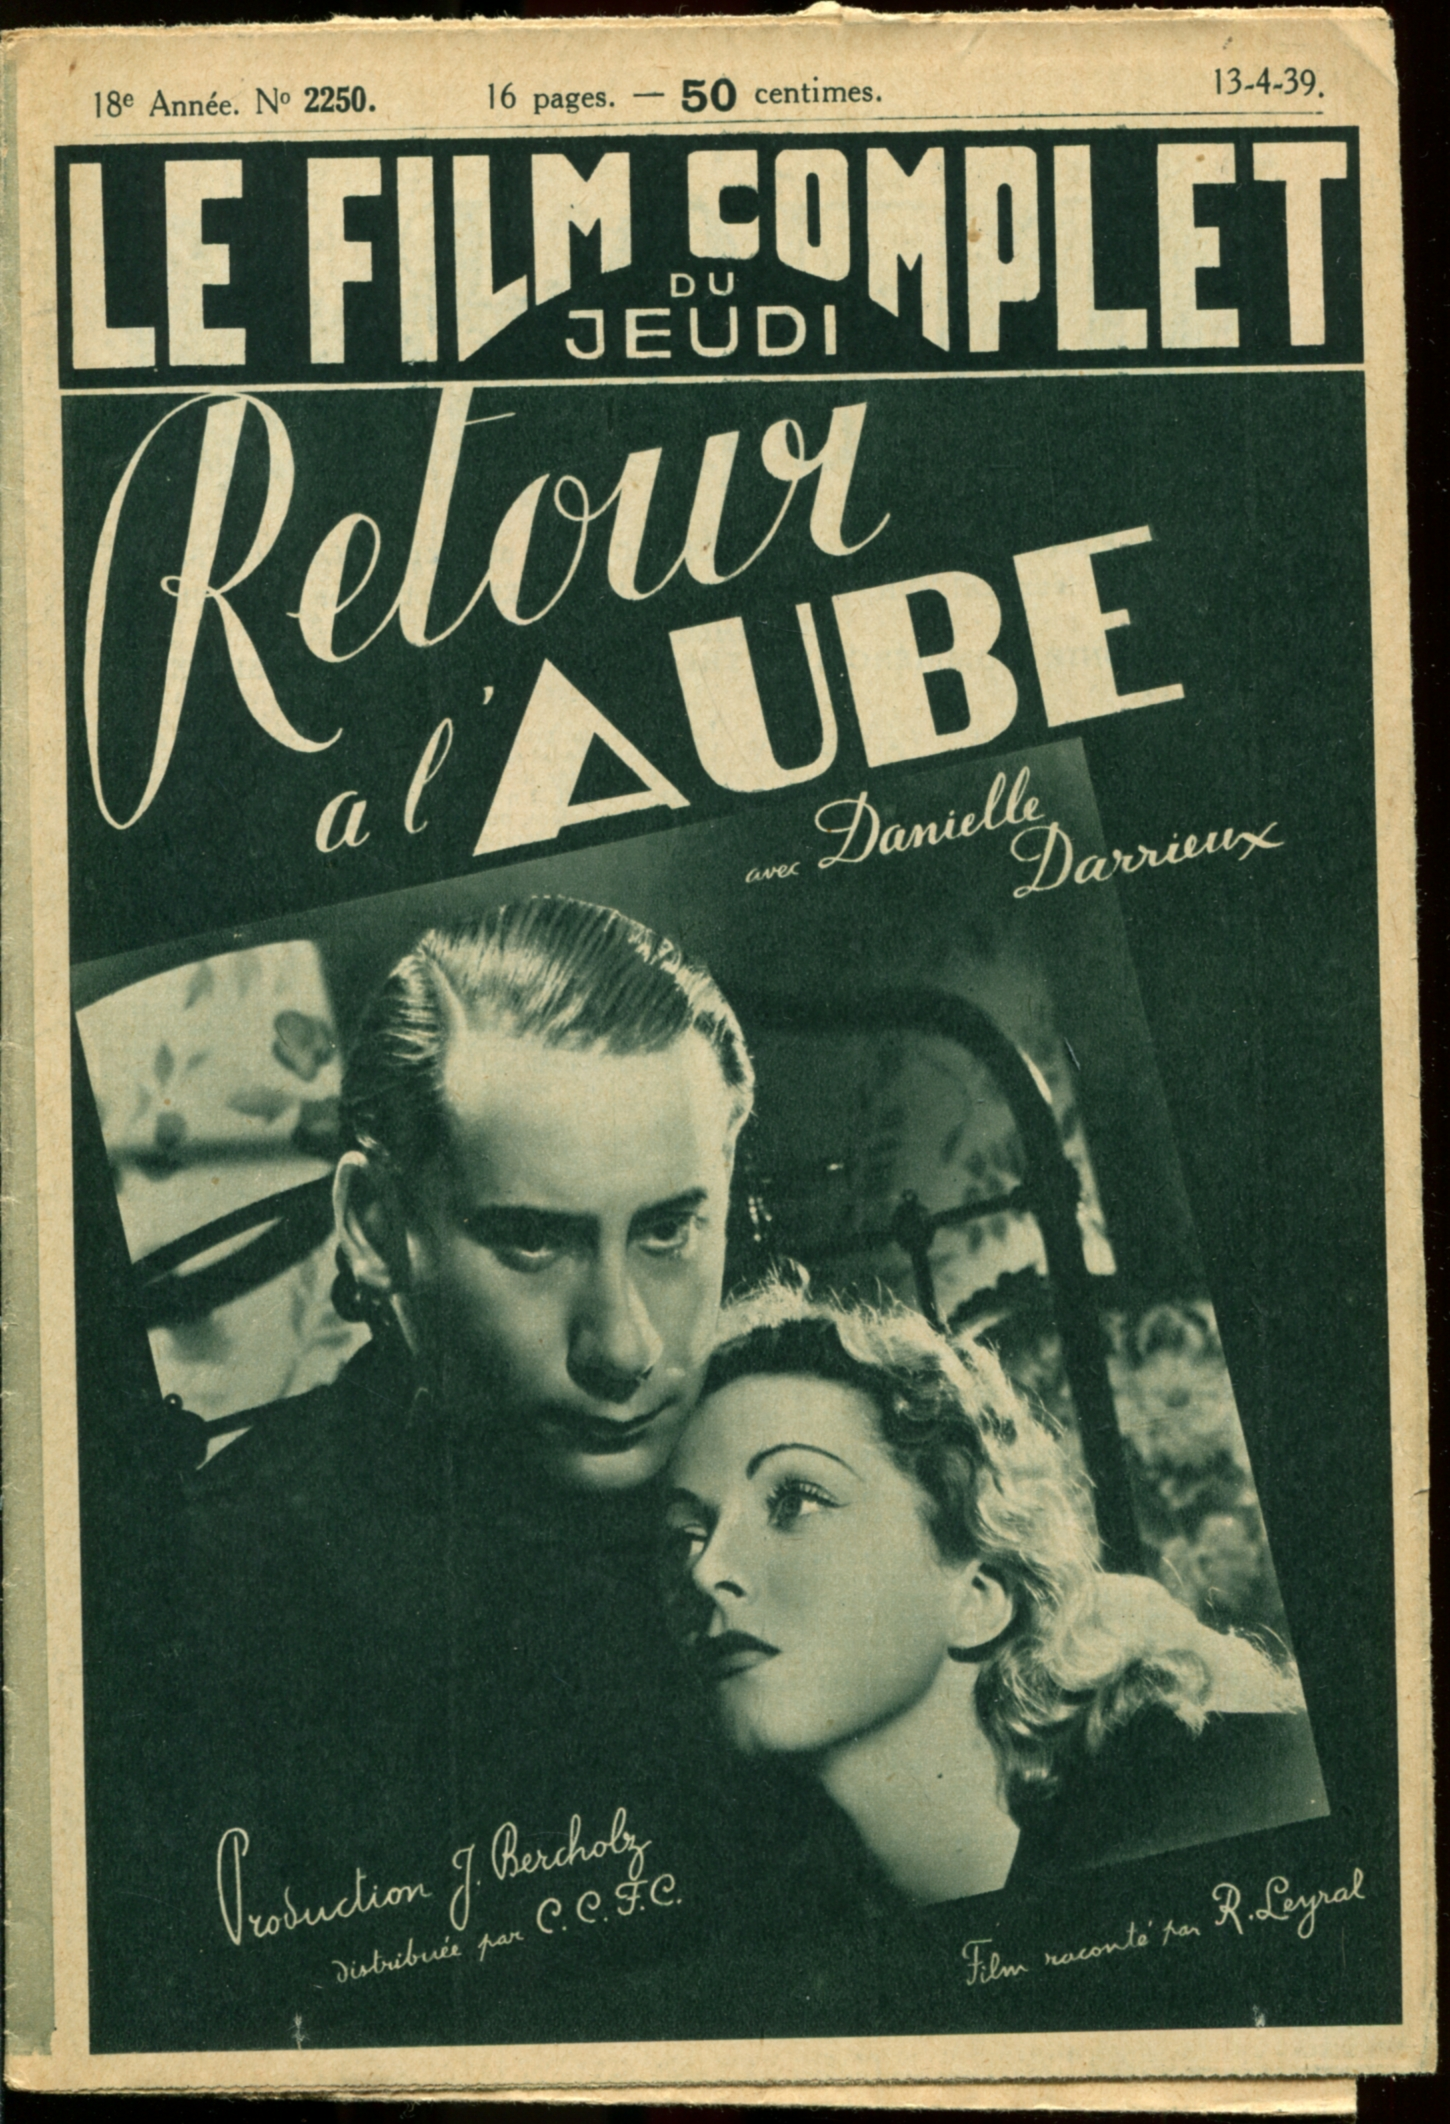 Danielle Darrieux and Pierre Dux in Retour à l'aube (1938)